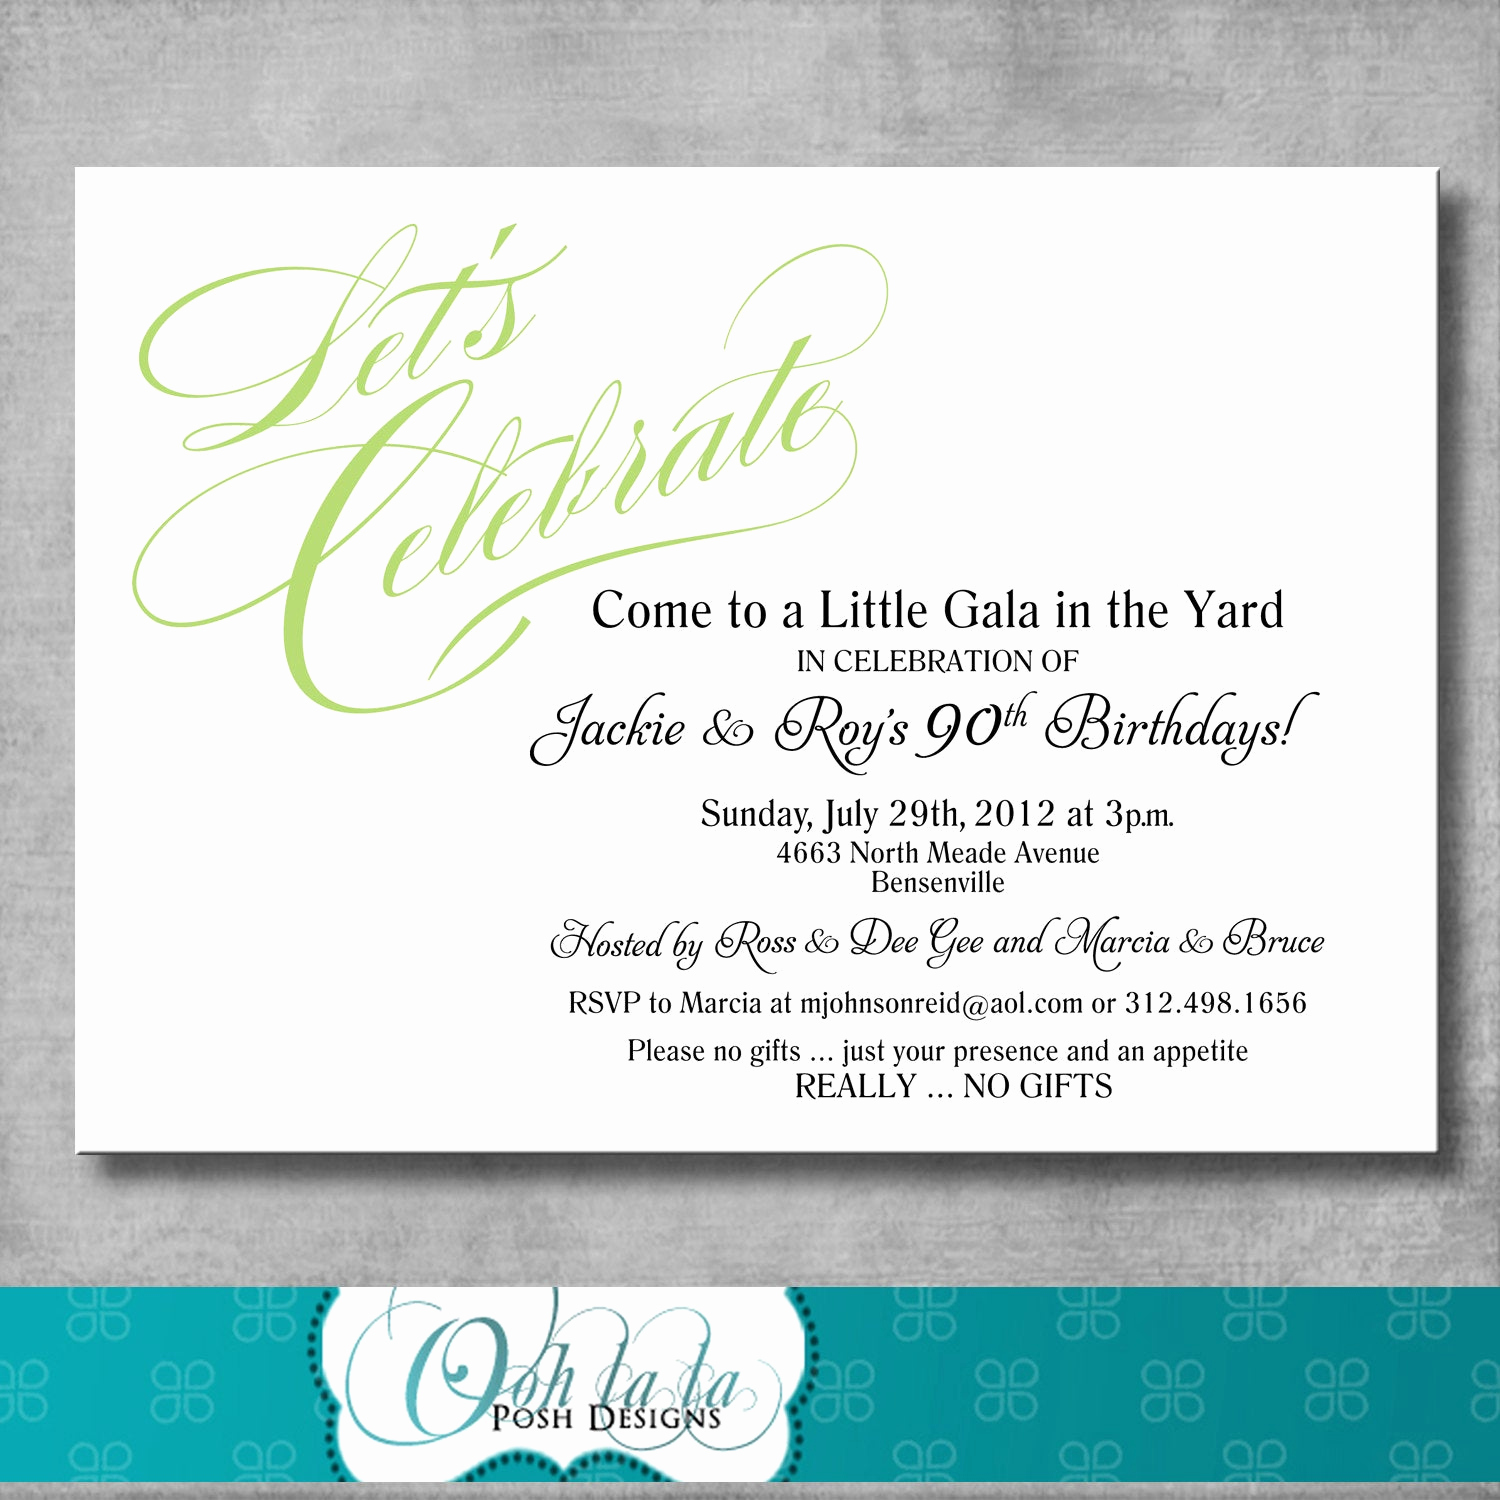 Birthday Invitation Ideas for Adults Fresh Printable Adult Birthday Party Invitation by